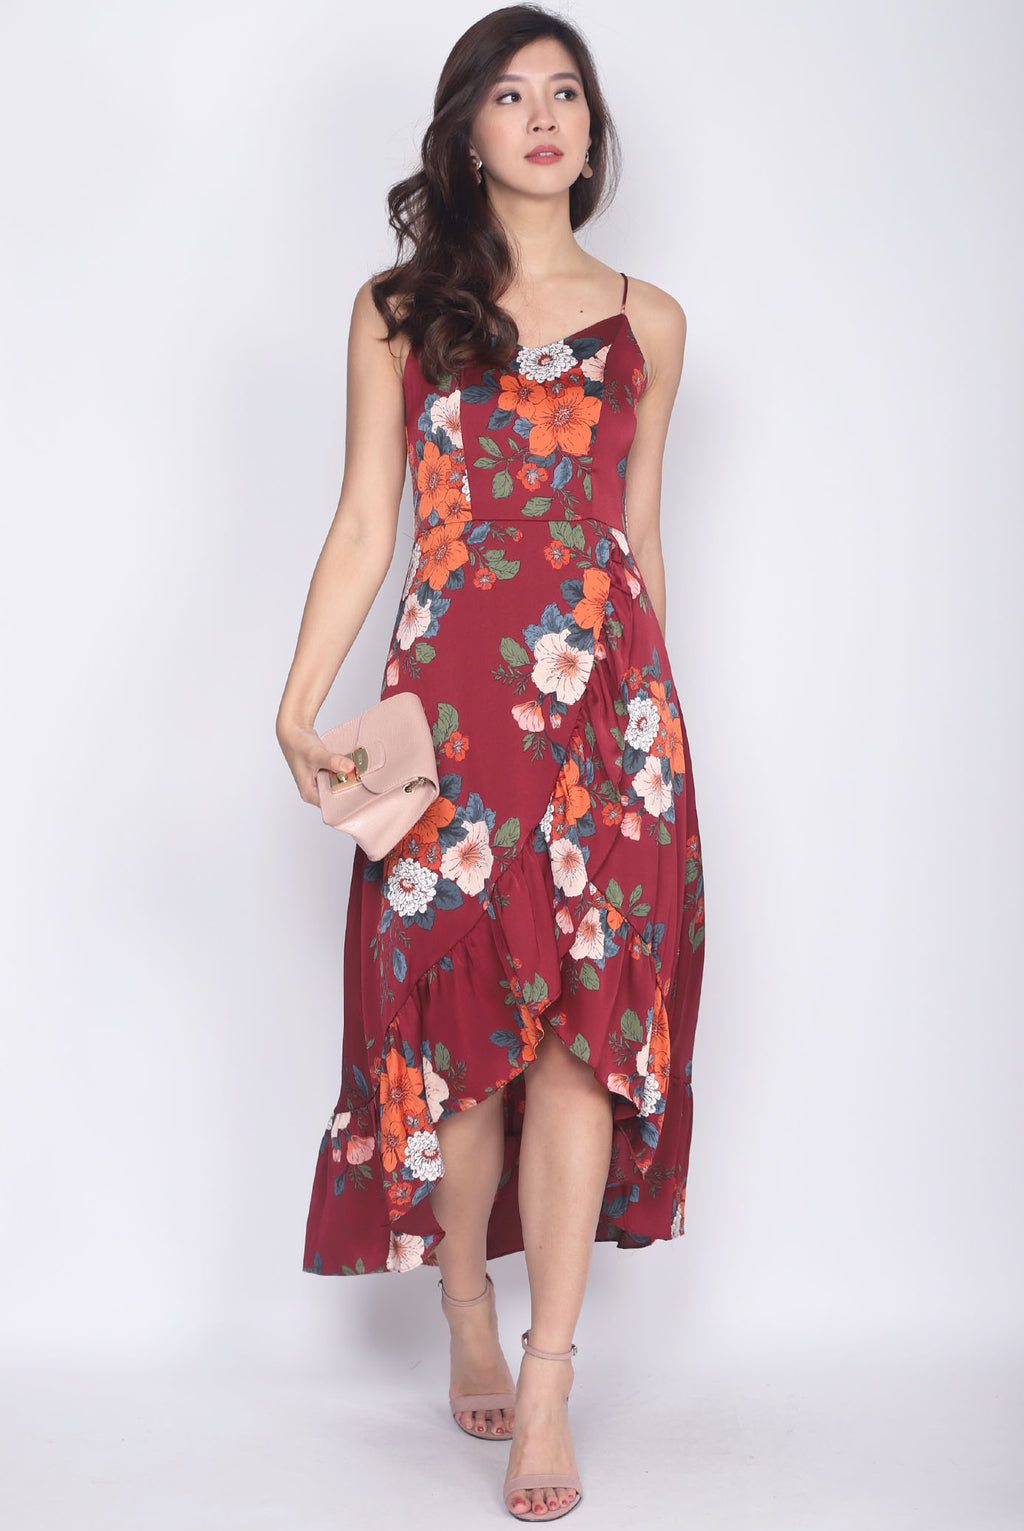 *Premium* Gomeisa Floral Fishtail Maxi Dress In Wine Red